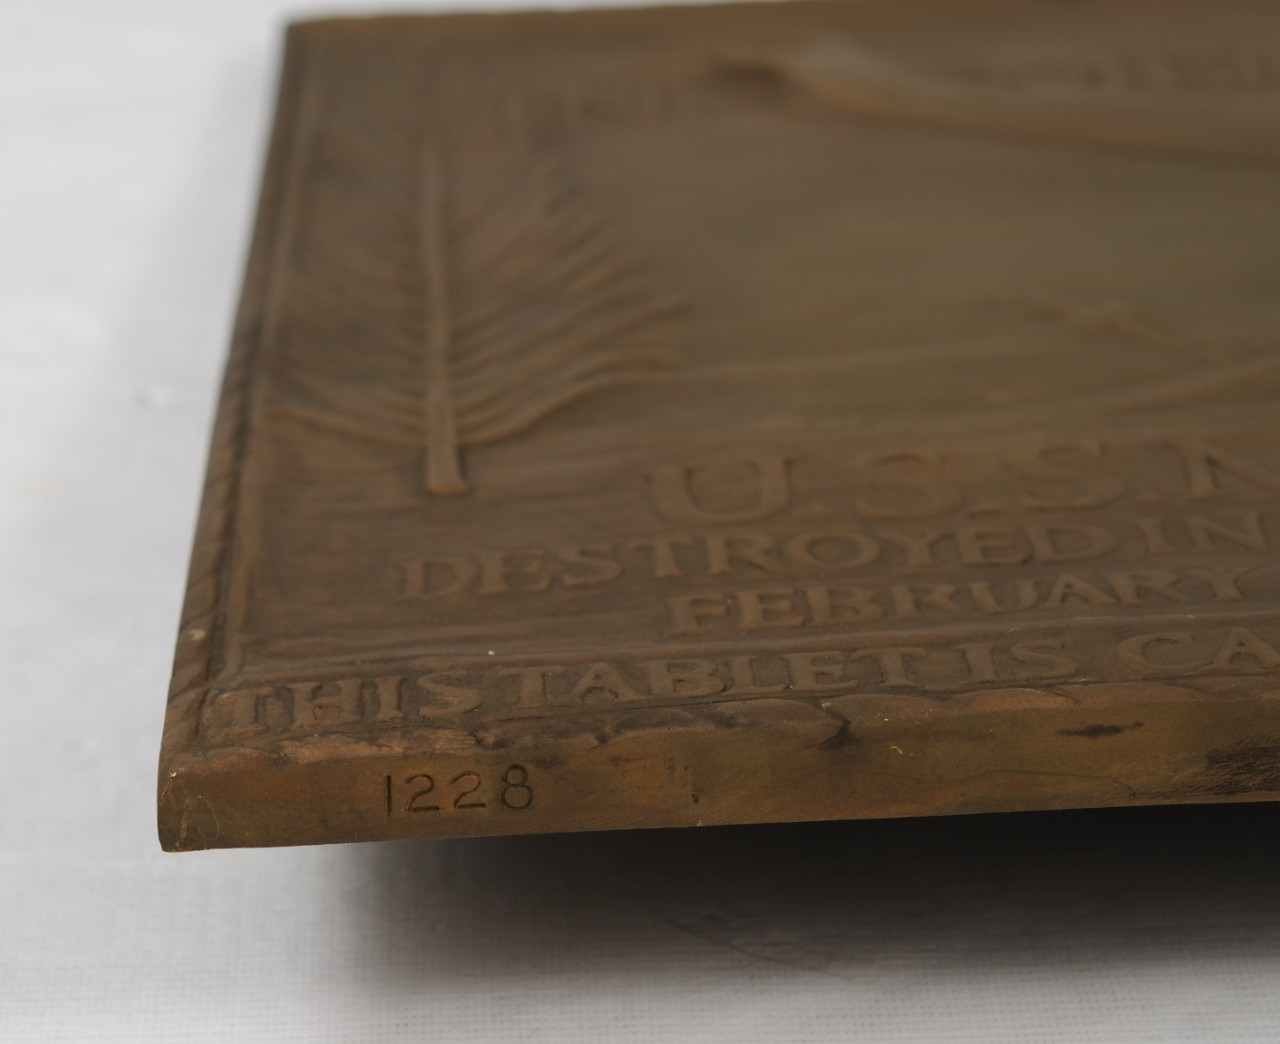 Plaque made from metal removed from USS Maine, serial number stamped on edge of plaque